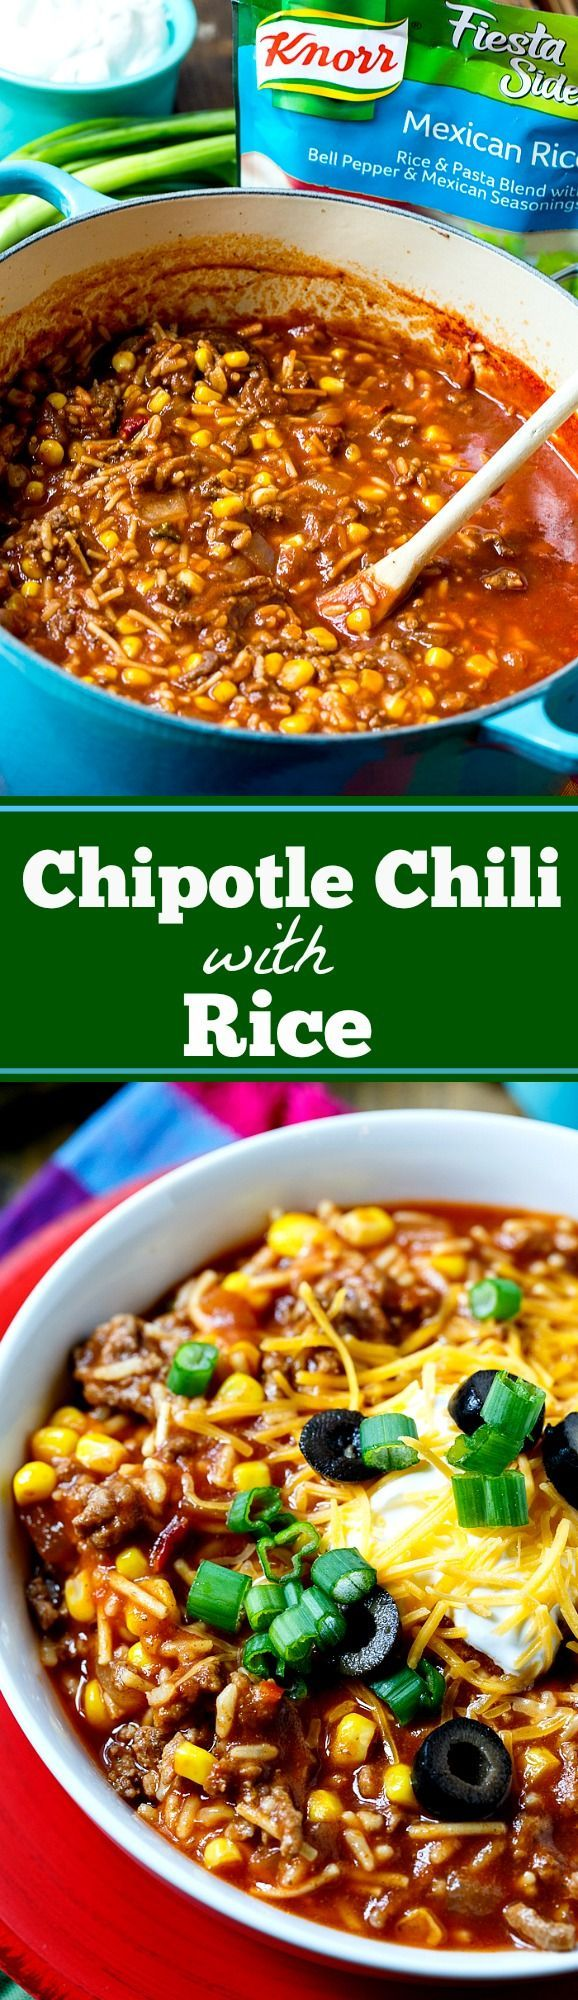 Chipotle Chili with Rice- ready in under 30 minutes with only 8 ingredients! A pouch of Knorr® rice adds so much flavor and makes it a really economical meal.